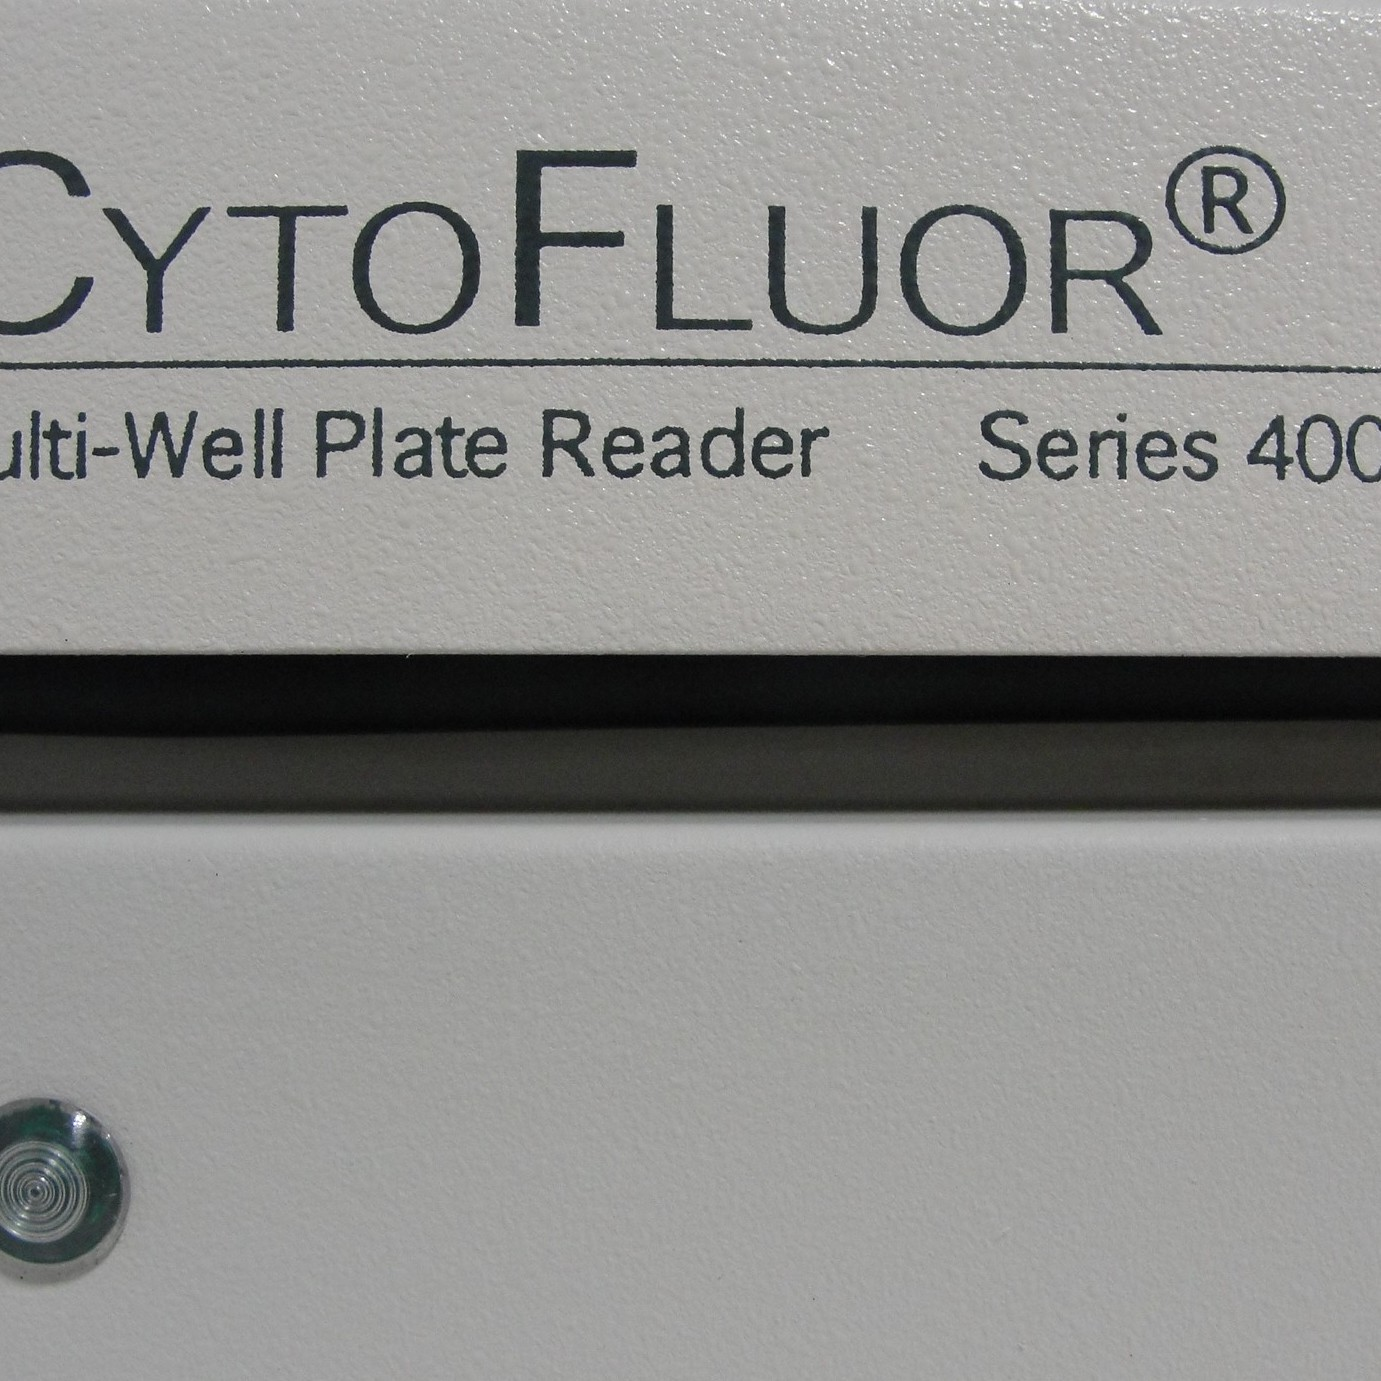 Perseptive Biosystems CytoFluor Multi-Well Plate Reader Image